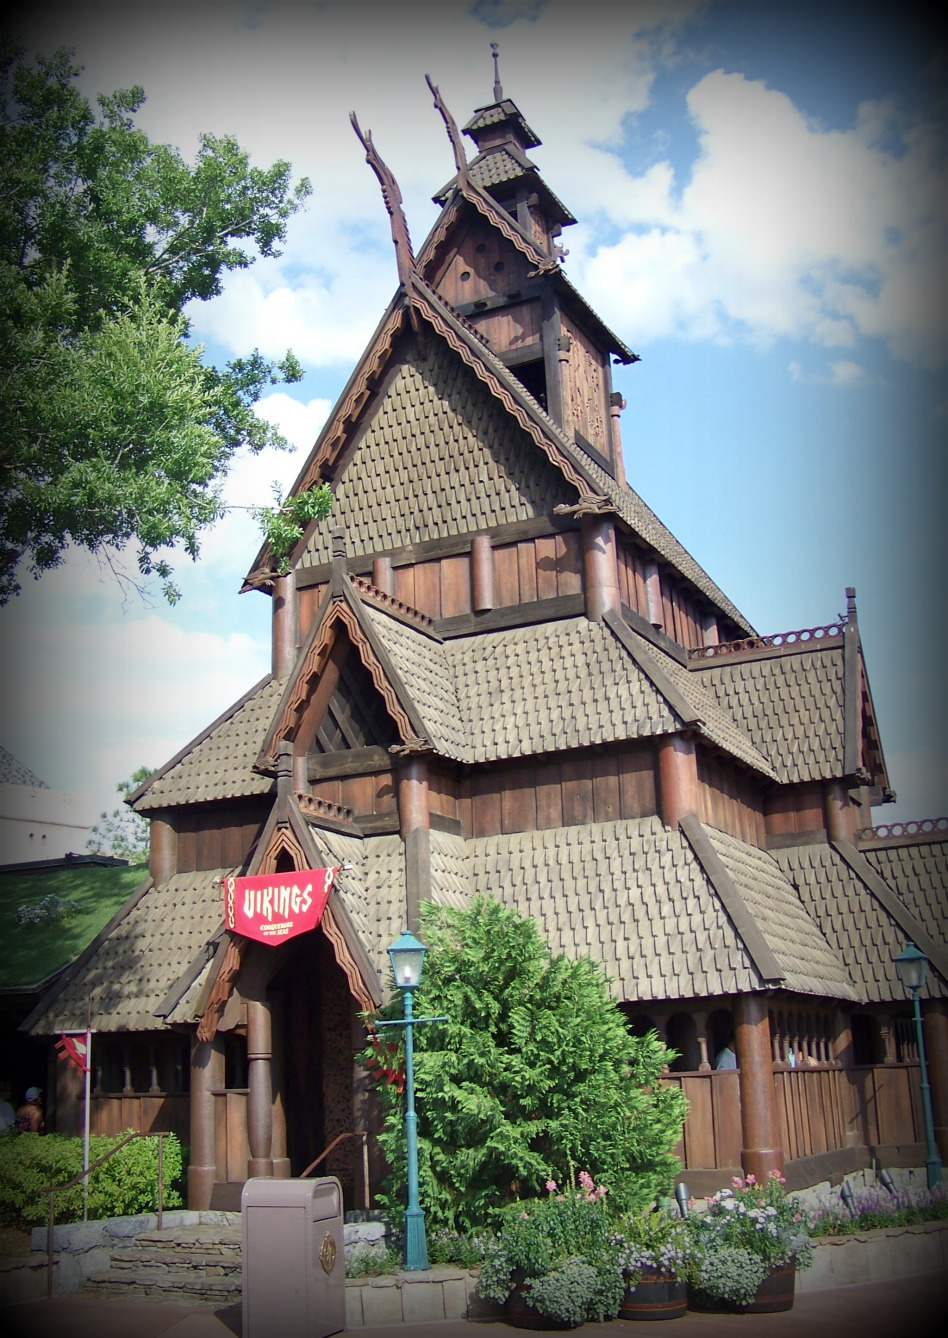 Norway pavilion at Epcot.